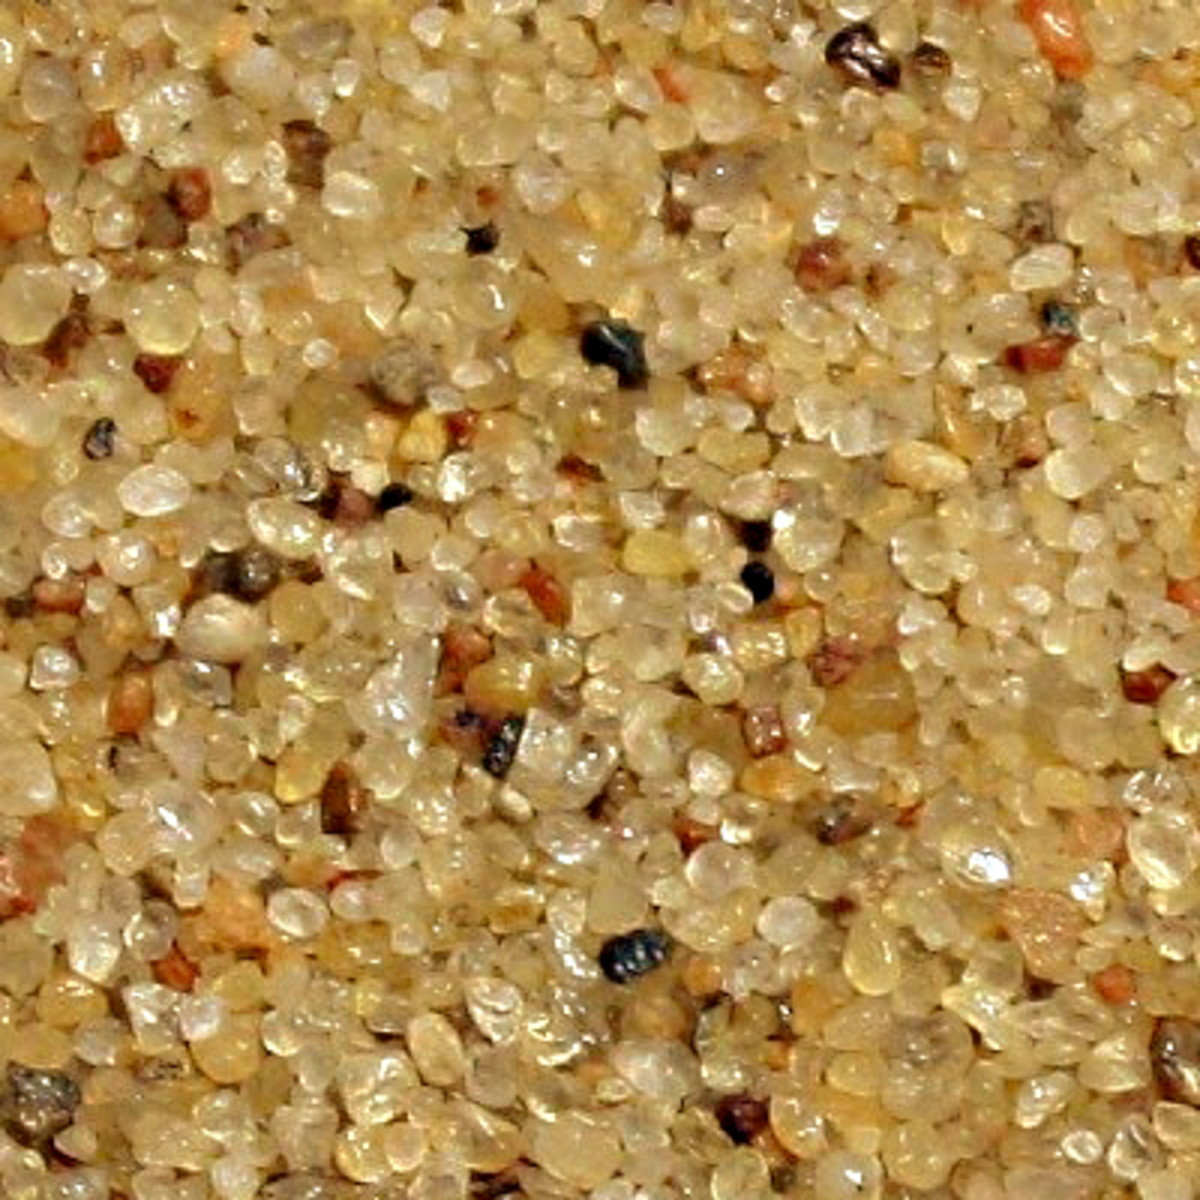 'Typical' quartz sand. Note the predominant colour of the sand, but also note the variety of other minerals in the sample